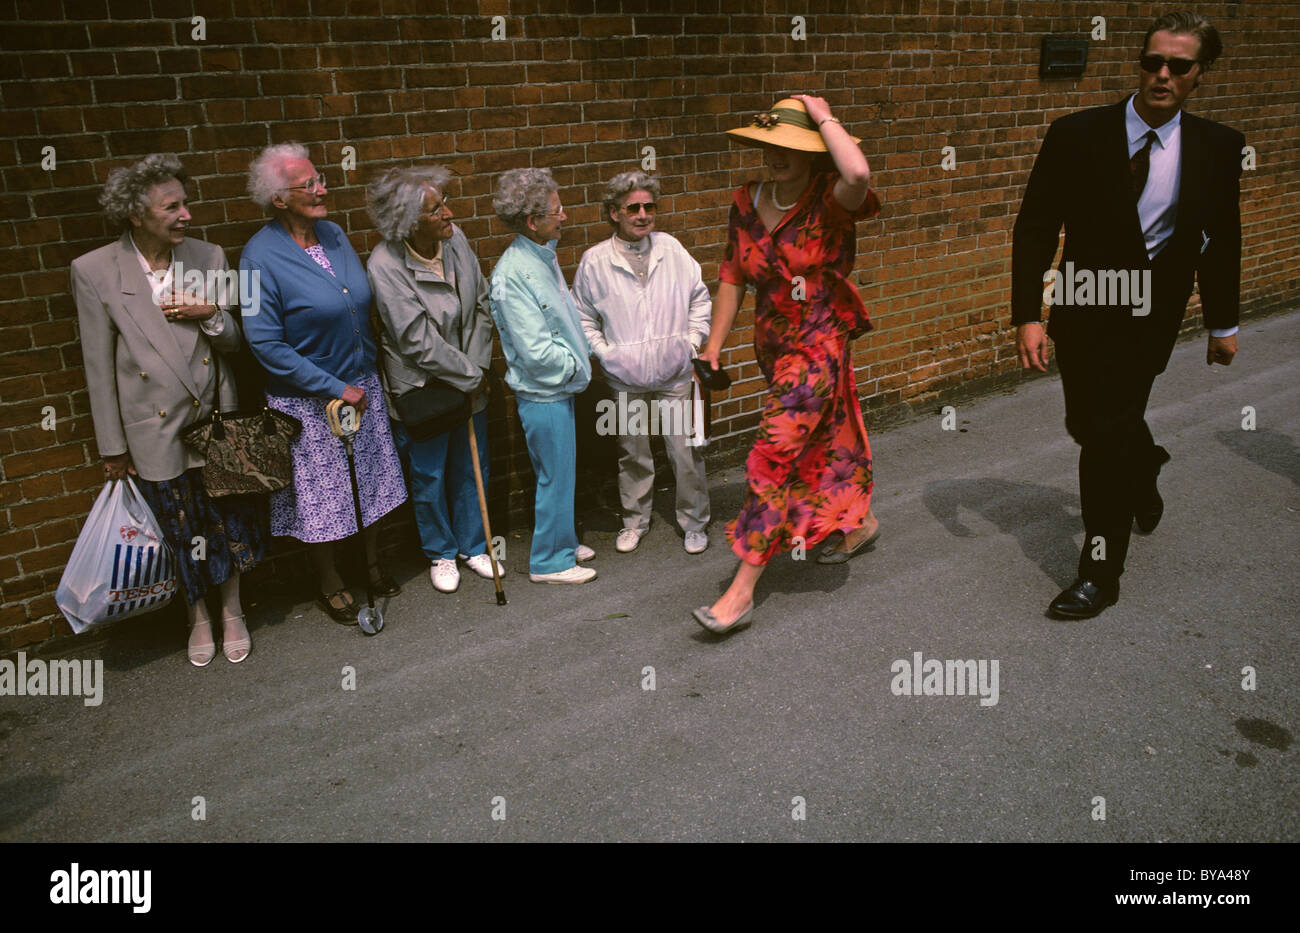 Arriving for the Royal Ascot races, young couple find themselves under scrutiny by group of elderly people-watchers - Stock Image